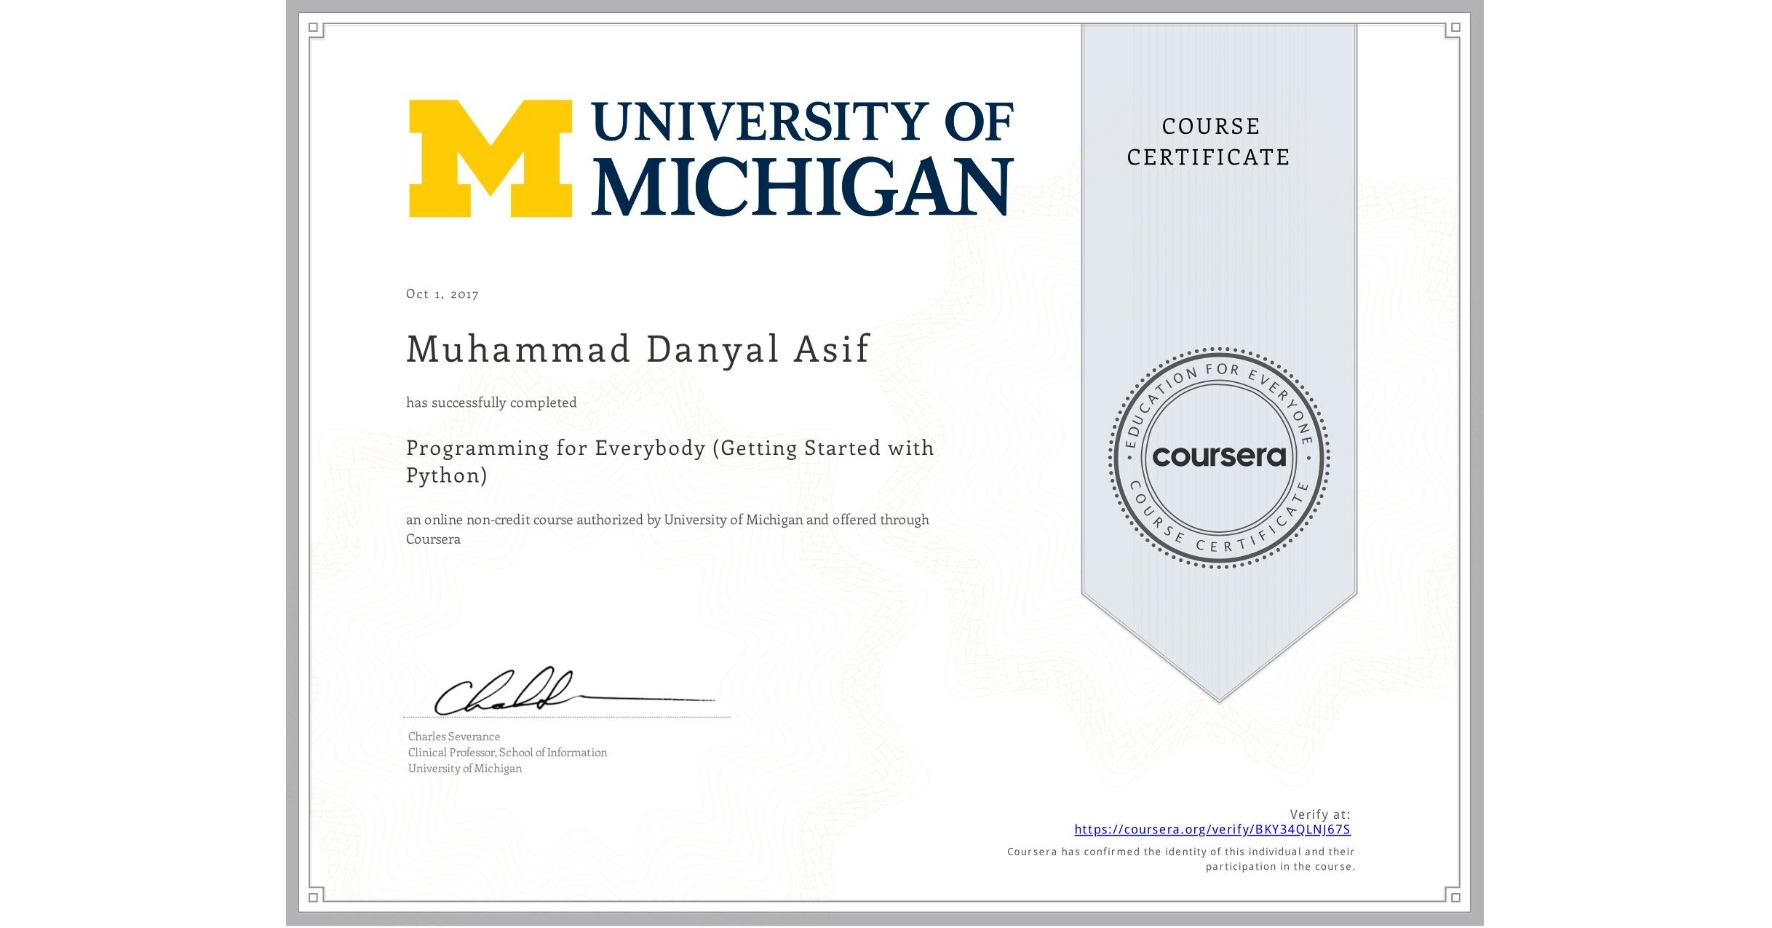 View certificate for Muhammad Danyal  Asif, Programming for Everybody (Getting Started with Python), an online non-credit course authorized by University of Michigan and offered through Coursera